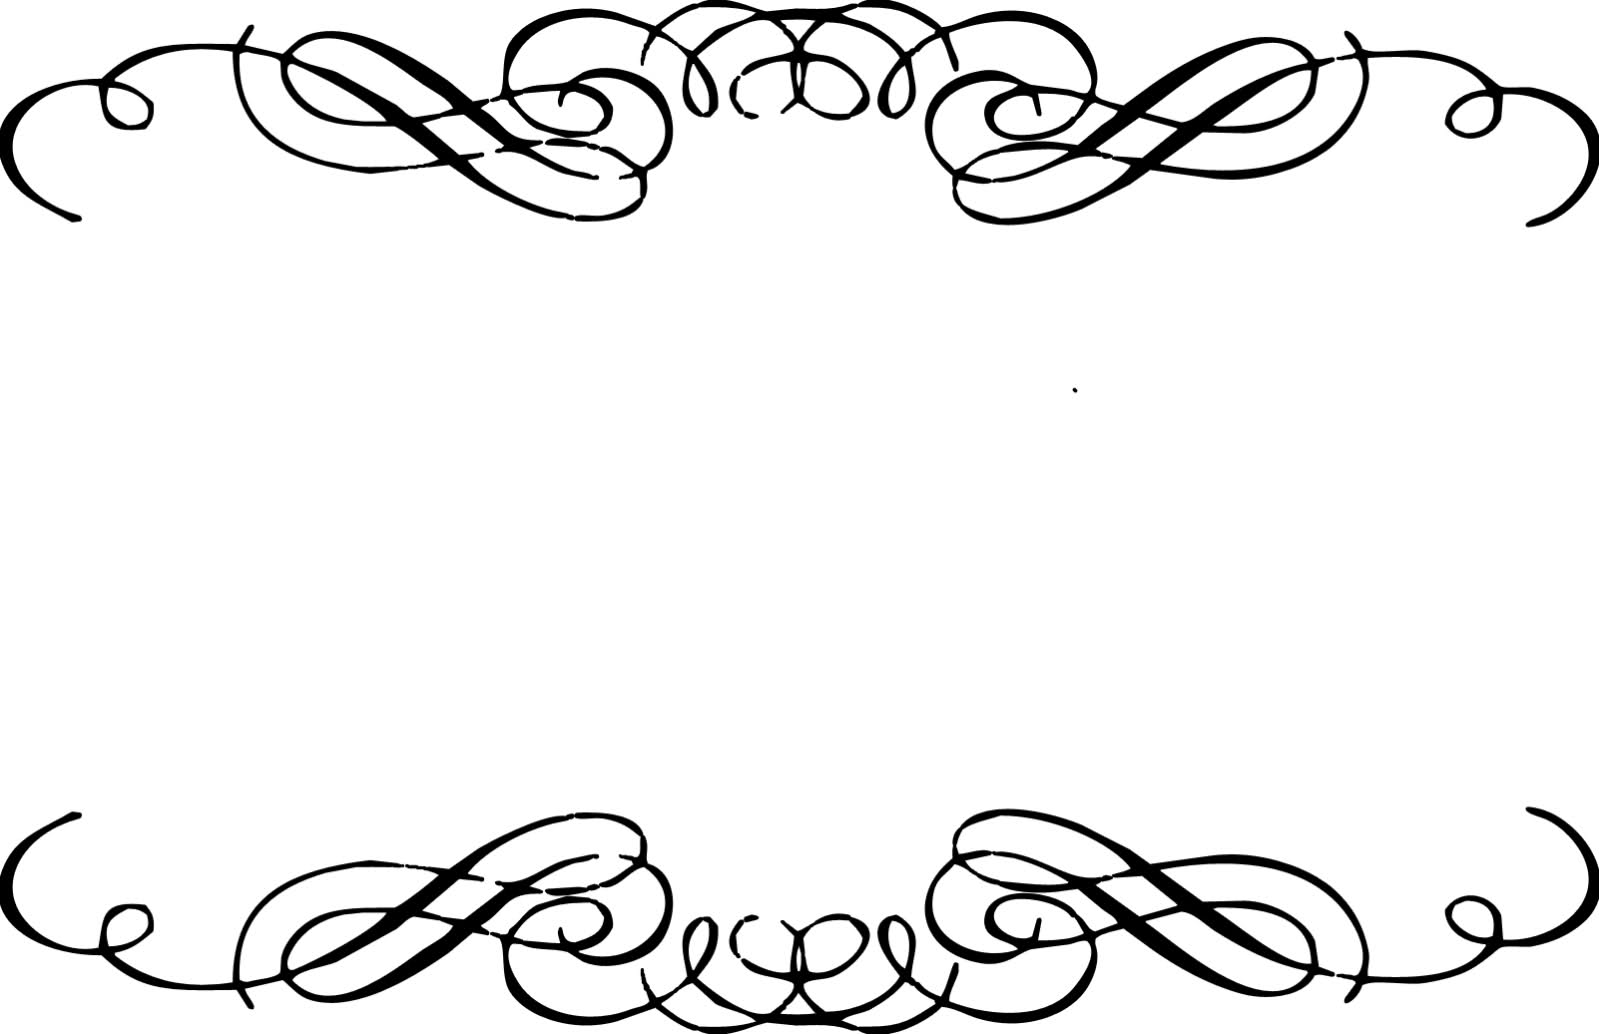 Fancy Lines Clip Art - Tumundografico